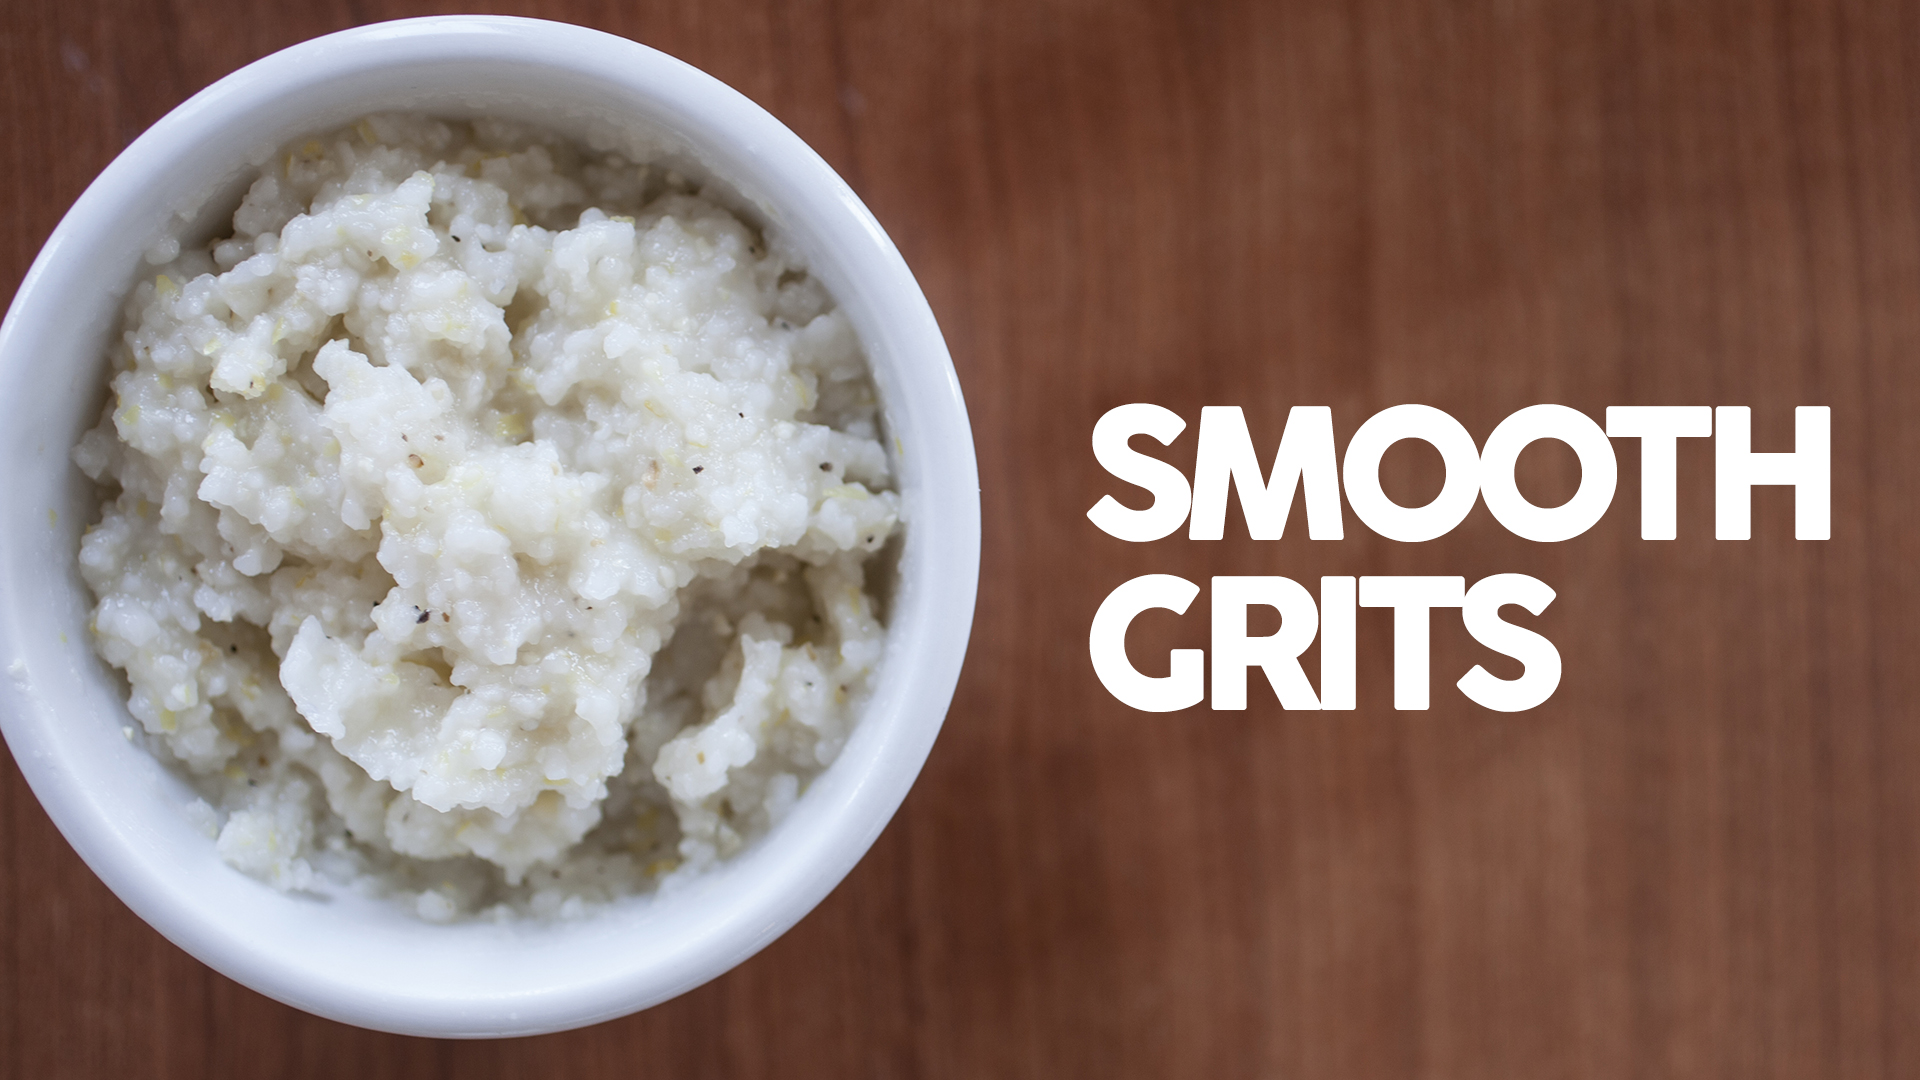 Smooth Grits